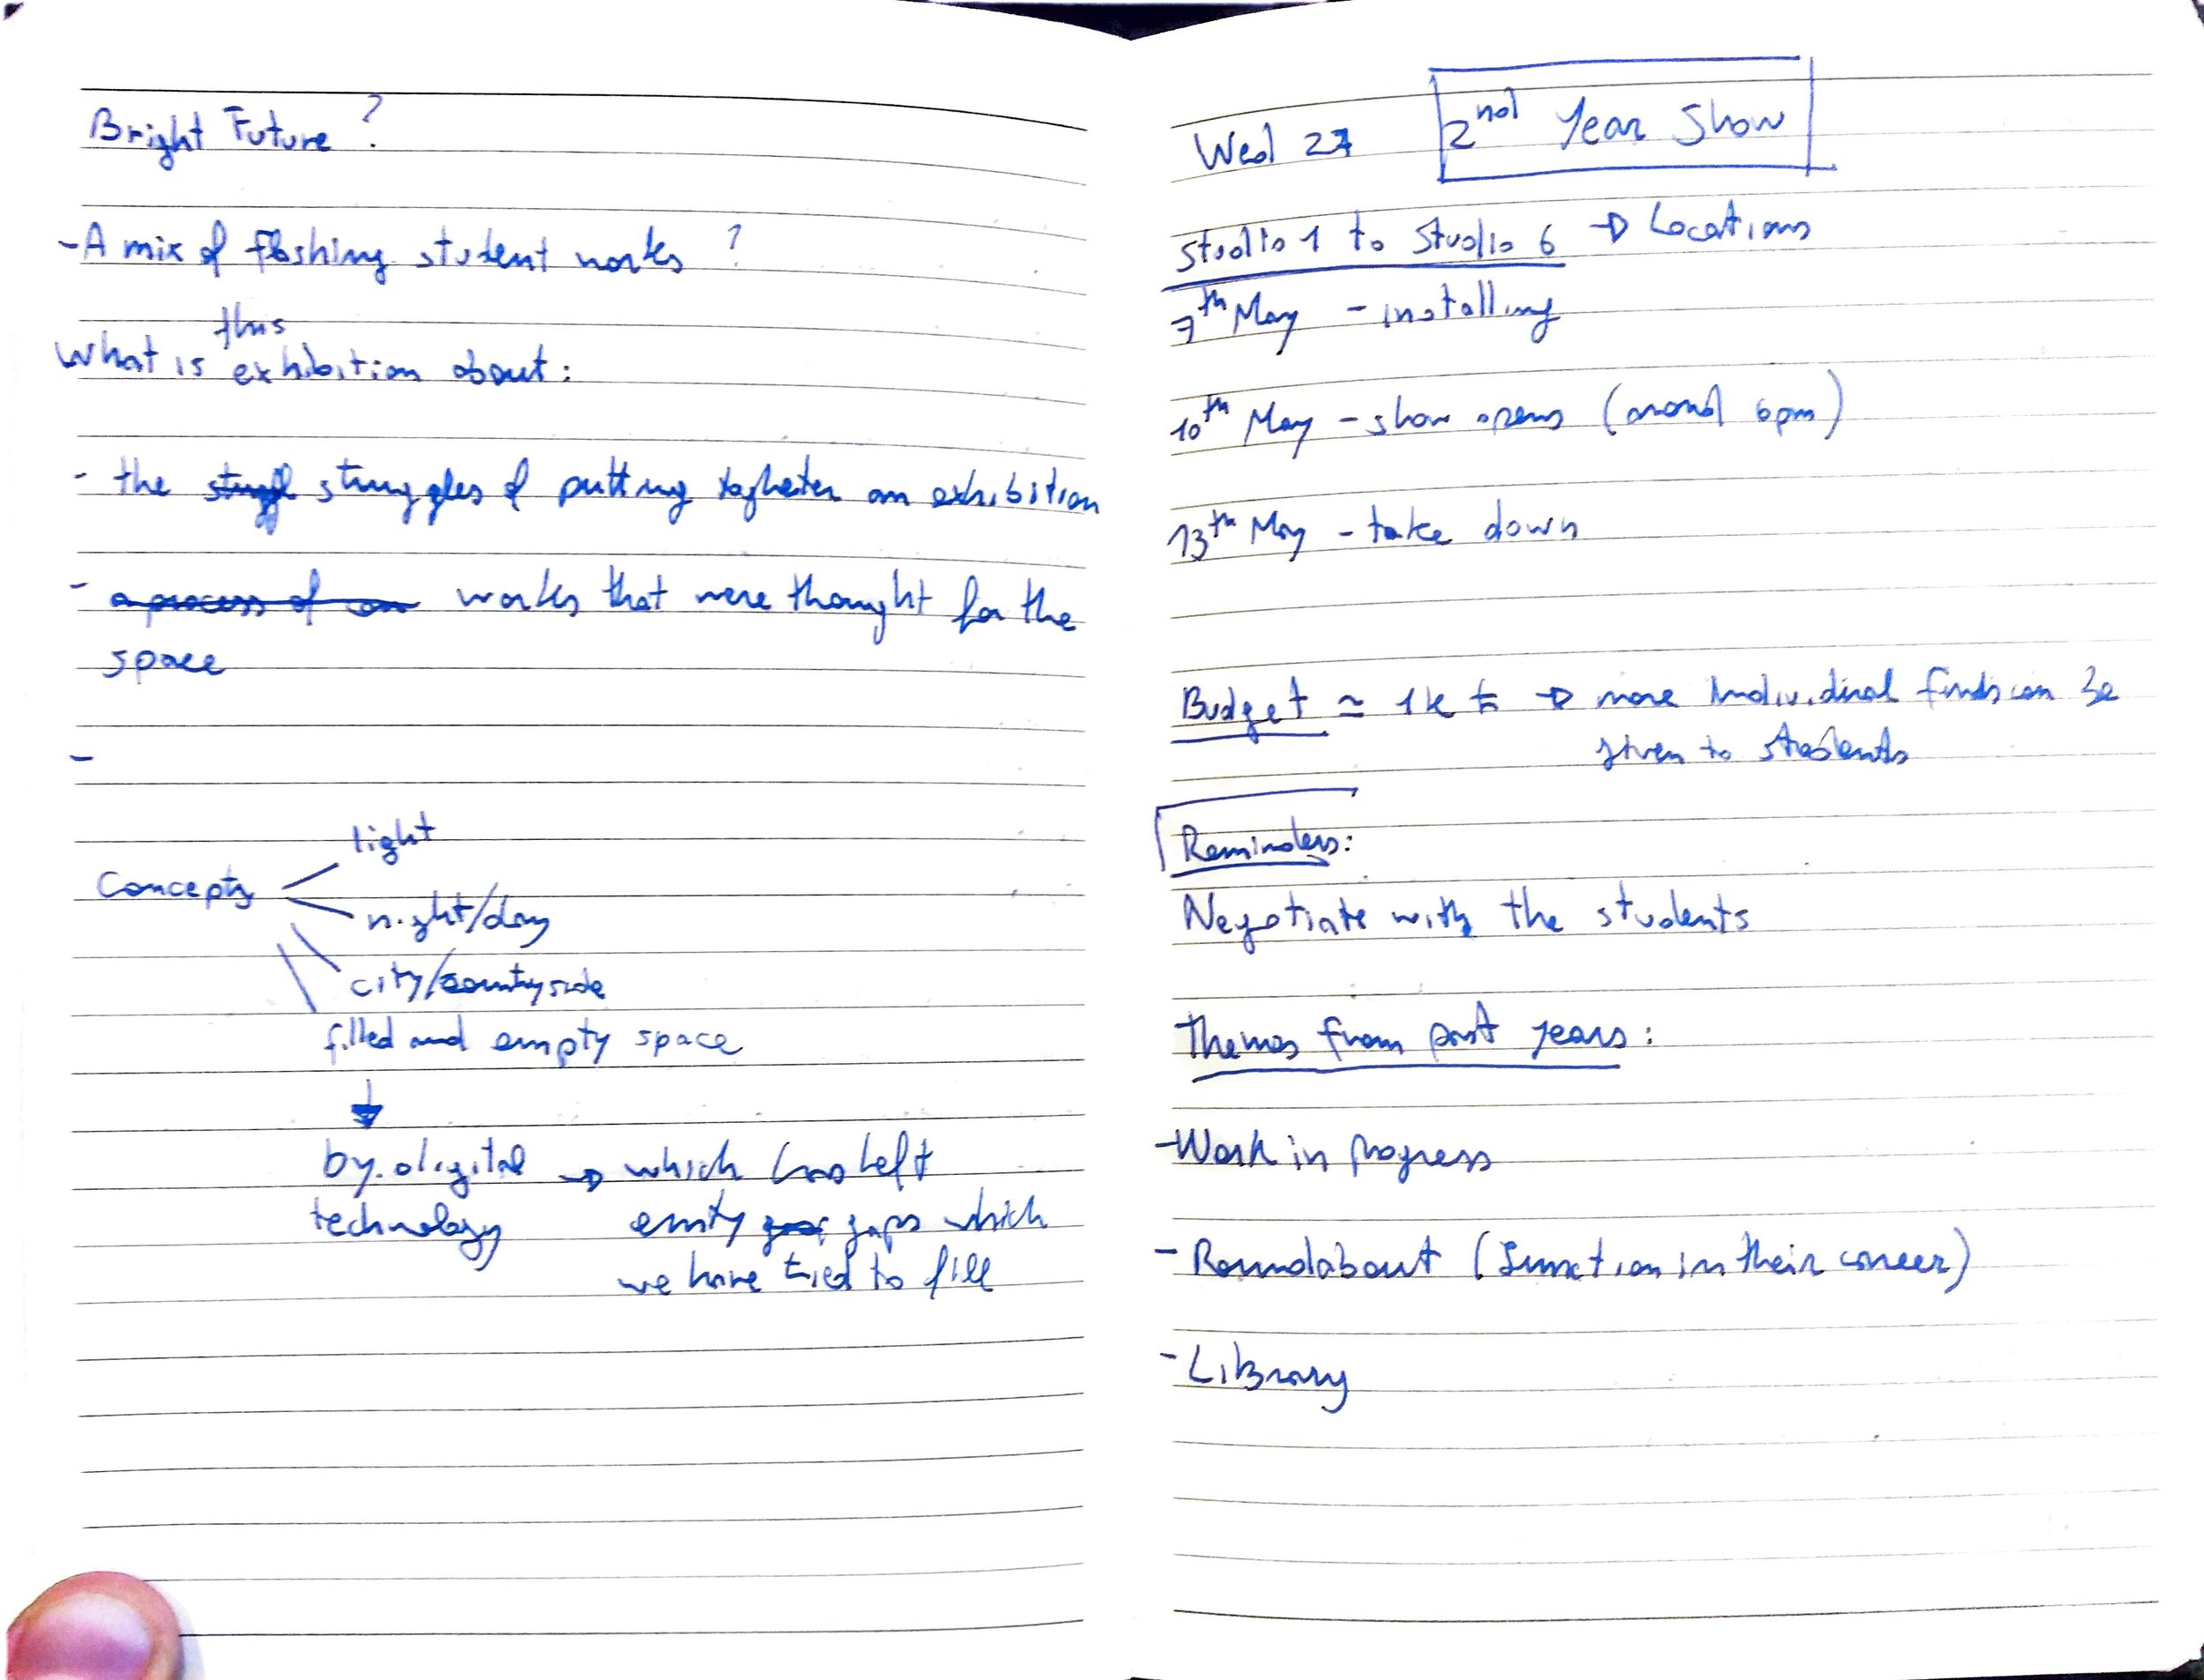 black and pink notebooks_Page_56_Image_0001.jpg